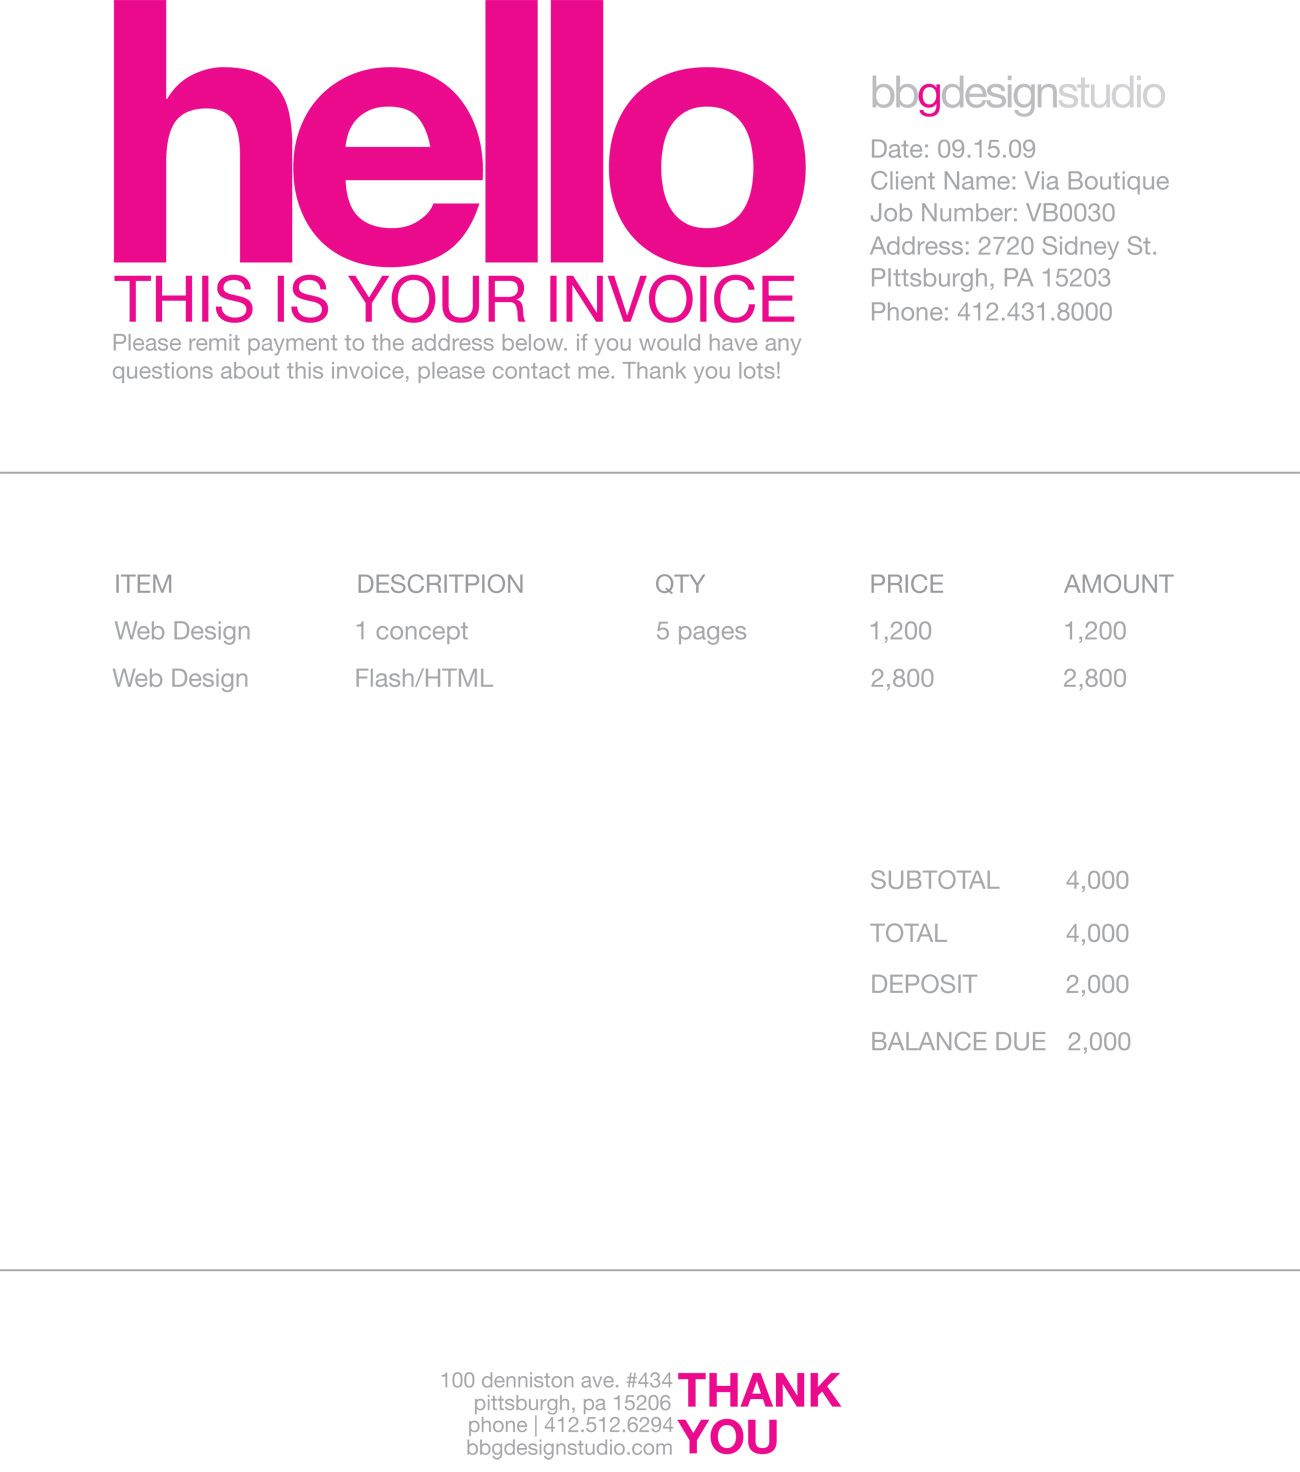 Theologygeekblogus  Nice  Images About Invoice Design On Pinterest With Exciting Invoice Loans Besides Sample Proforma Invoice Furthermore Free Simple Invoice Template With Amusing International Commercial Invoice Also Invoice Price Honda Crv In Addition Car Invoice Vs Msrp And Xero Invoicing As Well As Sap Invoice Additionally Microsoft Office Invoice Templates From Pinterestcom With Theologygeekblogus  Exciting  Images About Invoice Design On Pinterest With Amusing Invoice Loans Besides Sample Proforma Invoice Furthermore Free Simple Invoice Template And Nice International Commercial Invoice Also Invoice Price Honda Crv In Addition Car Invoice Vs Msrp From Pinterestcom